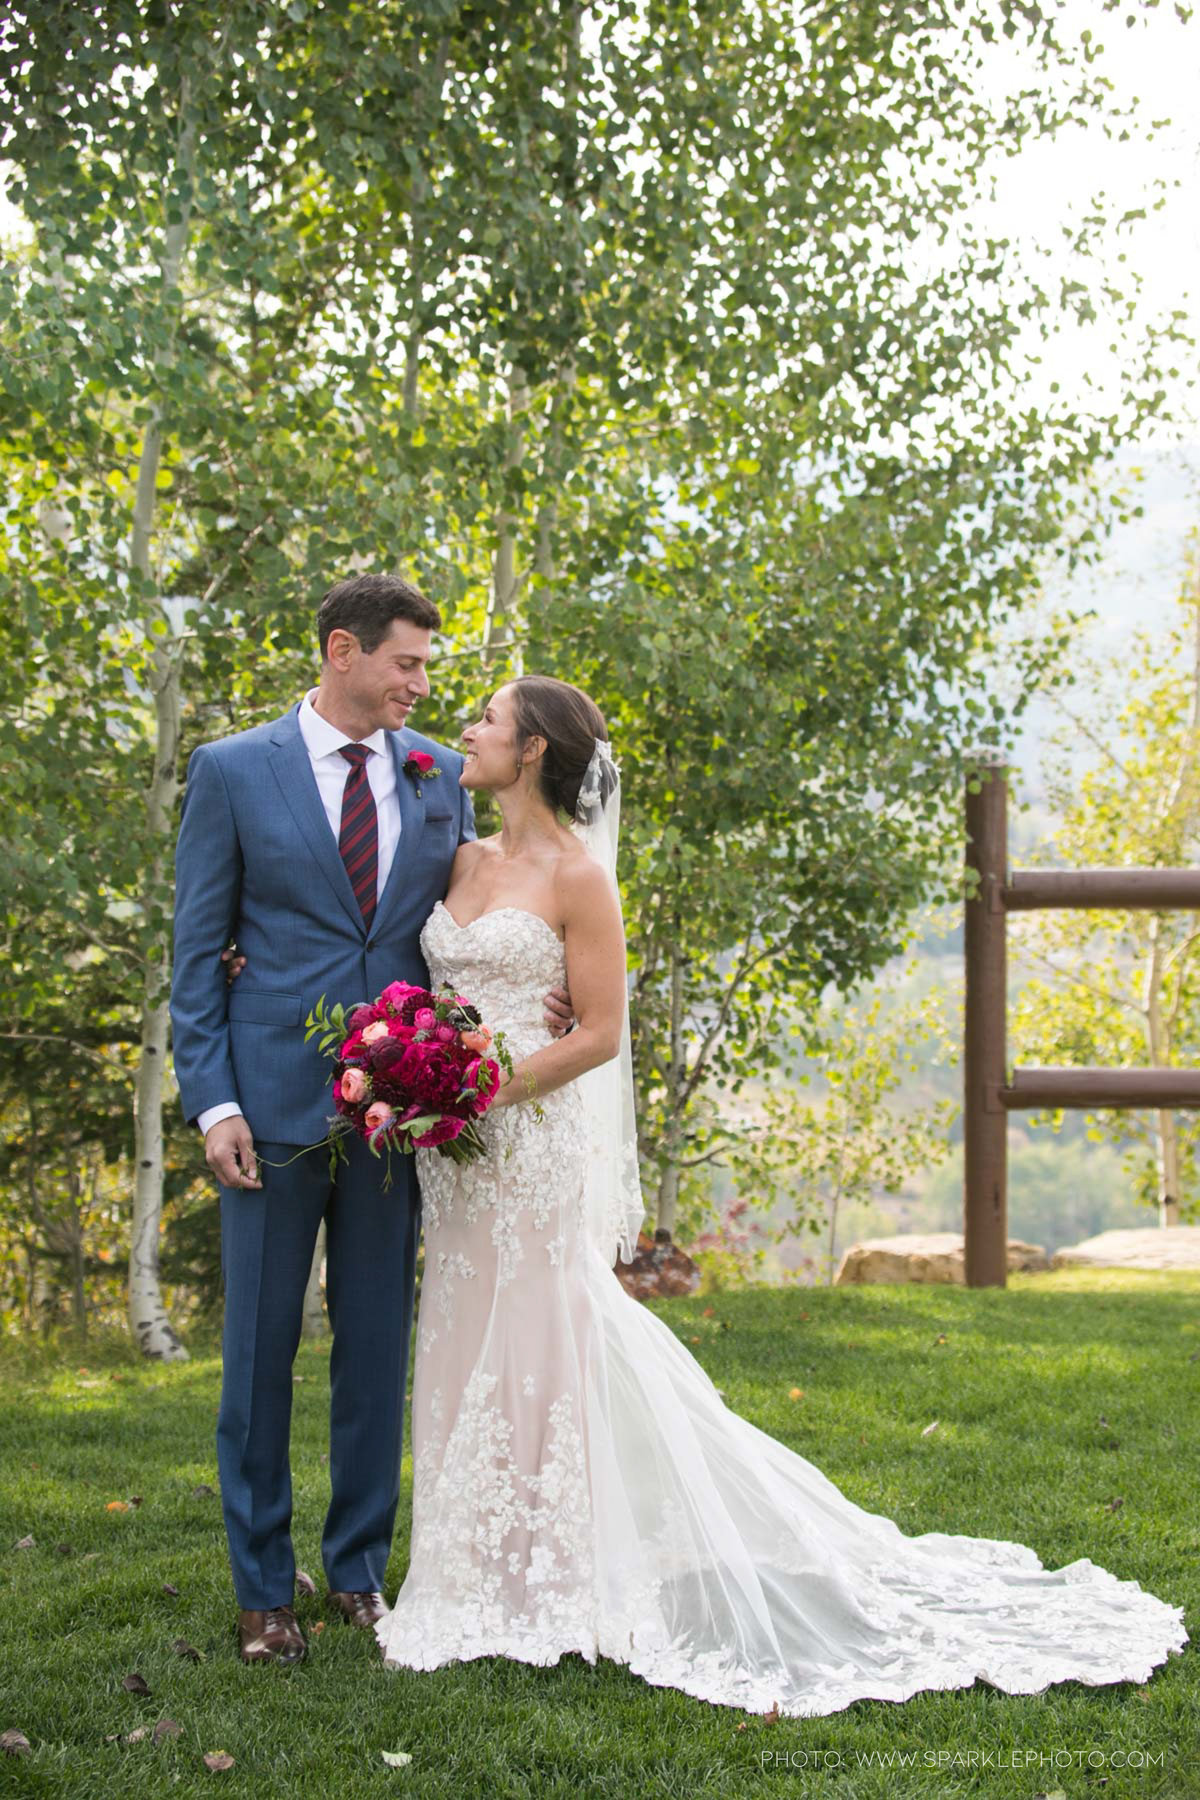 Utah Florist_Summer Weddings in Park City_Colorful Wedding_Luxe Mountain Weddings_Stein Eriksen Lodge Weddings_Artisan Bloom--7